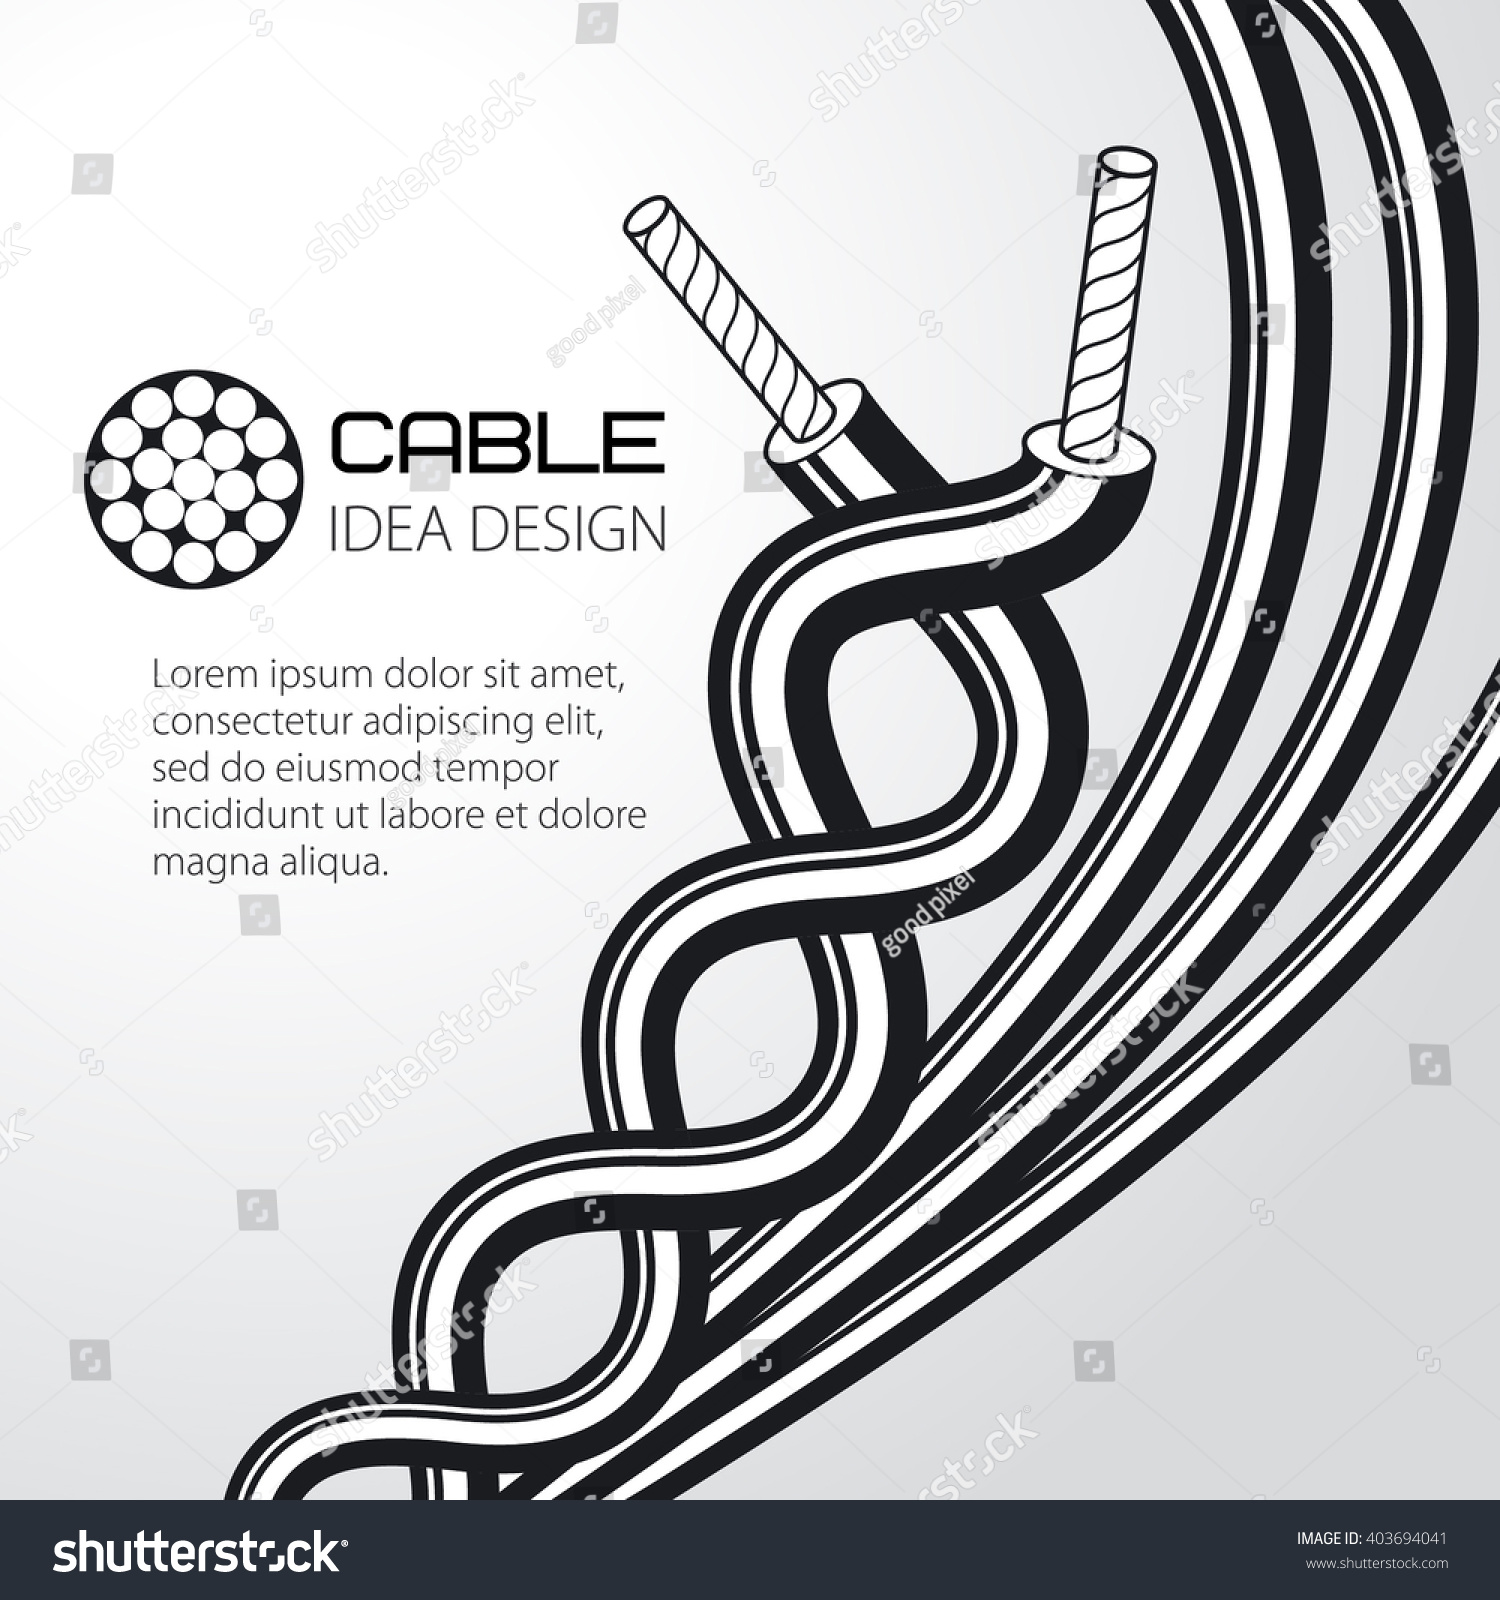 Cable Wire Vector Design Stock Vector (Royalty Free) 403694041 ...